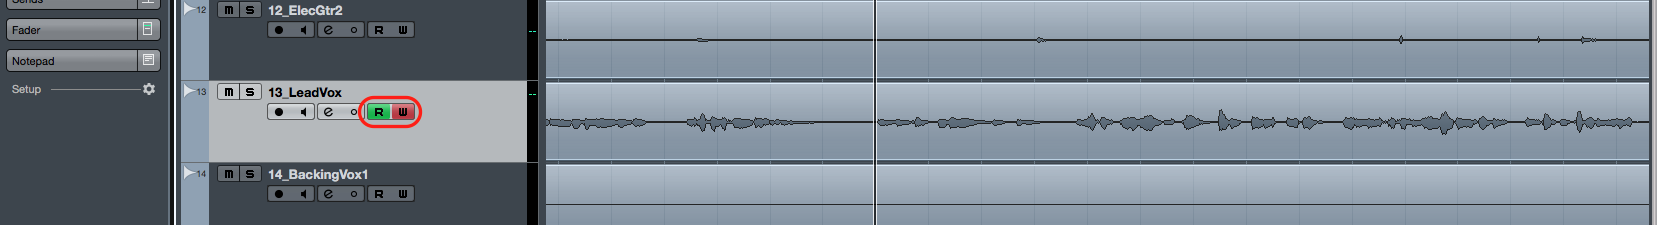 Press_Write_Cubase.png